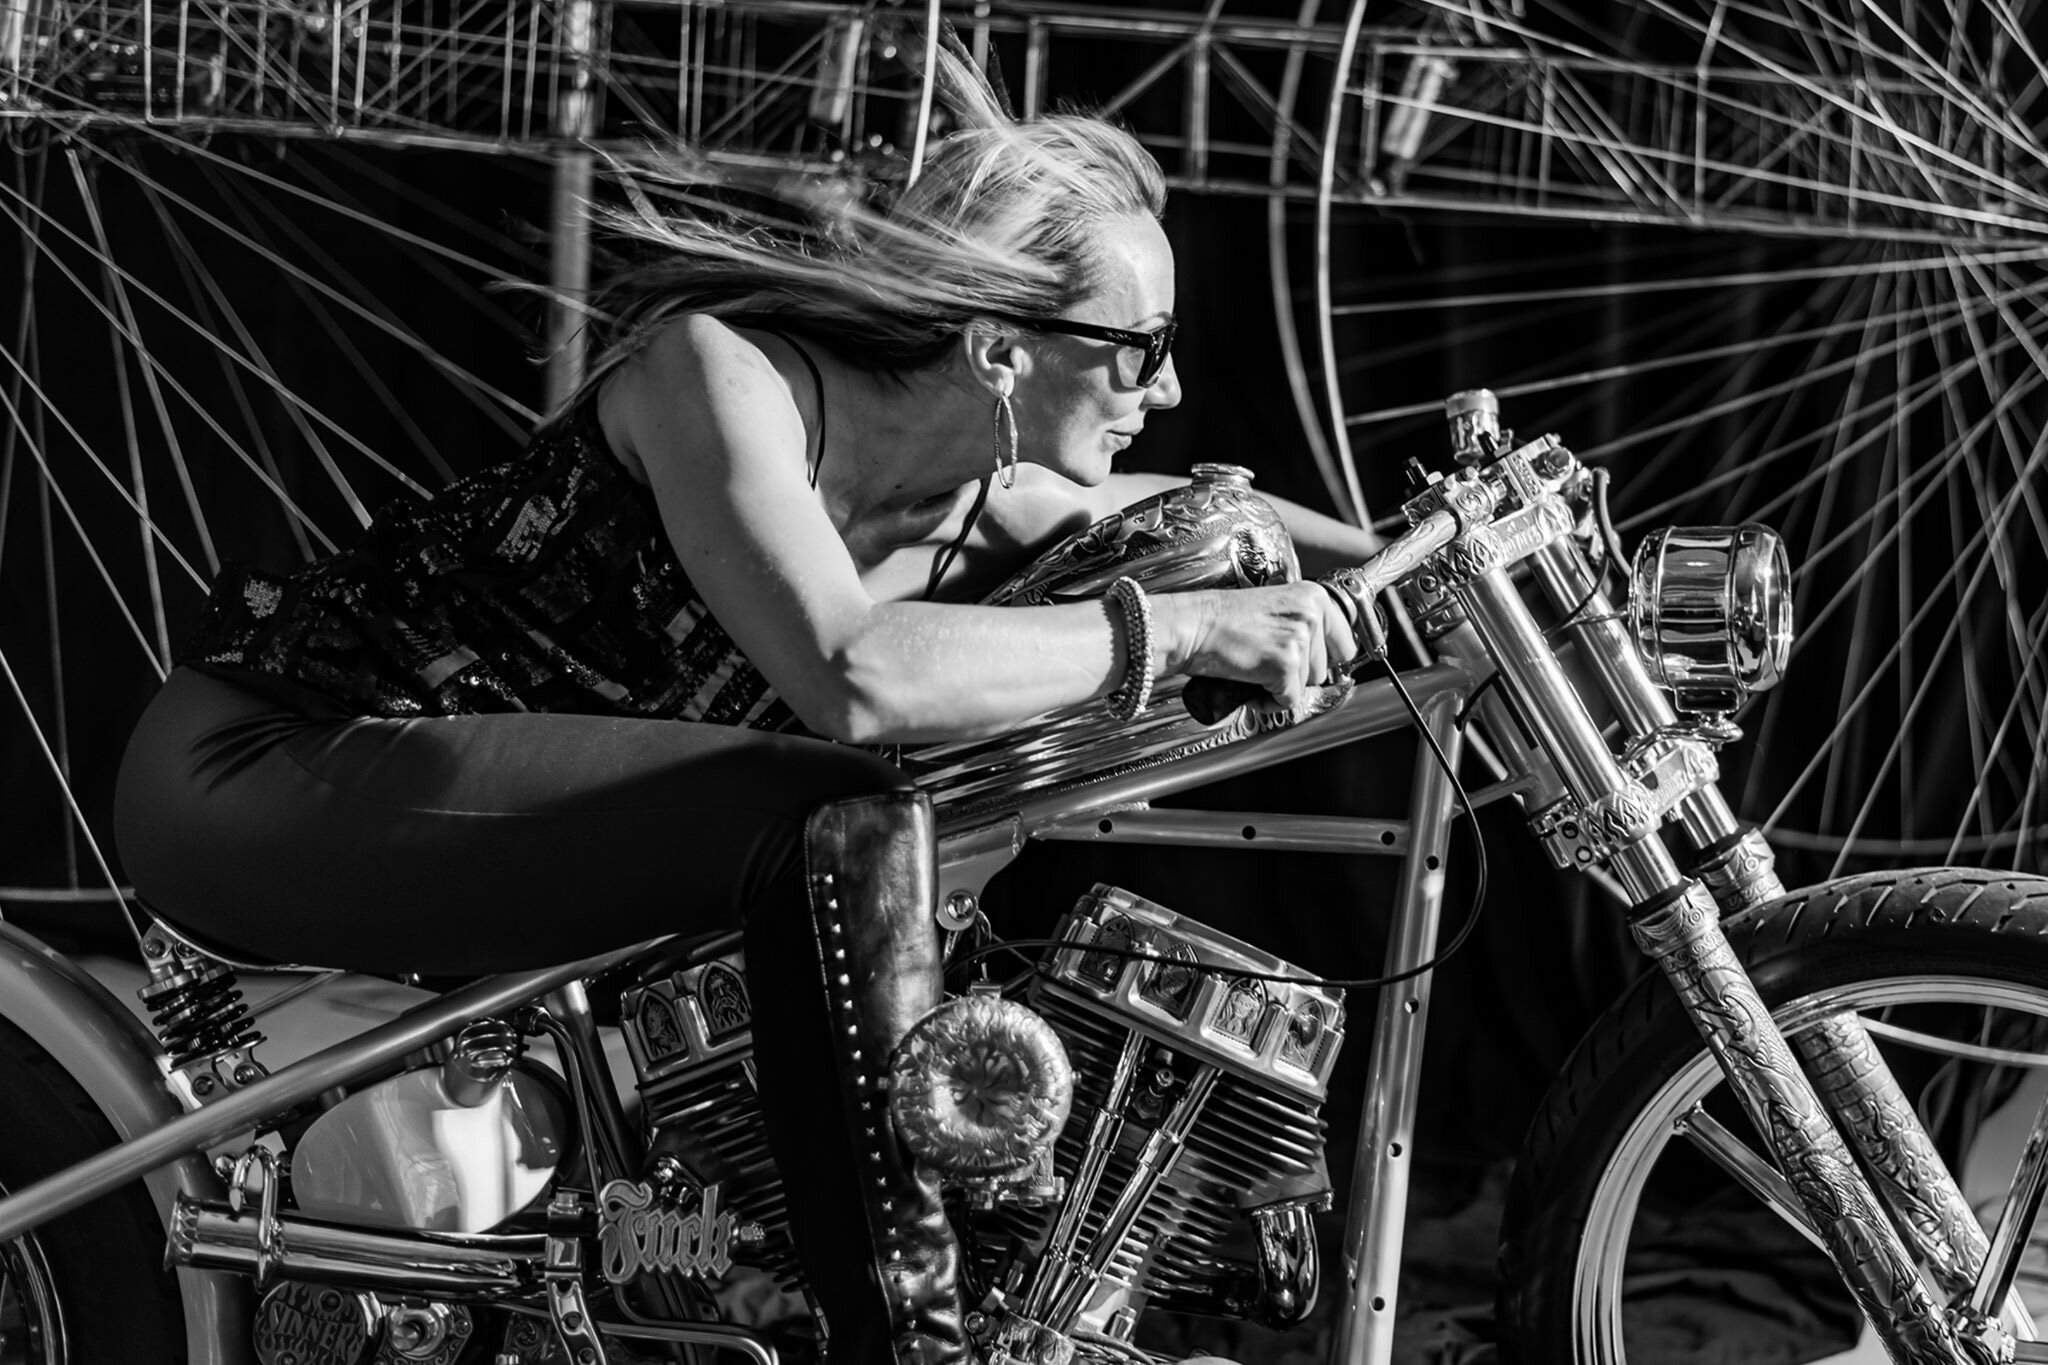 """I got very lucky to pose on an exquisitely crafted bike created by Scottie Porges, a custom masterpiece named """"Lucifer's Hammer""""."""